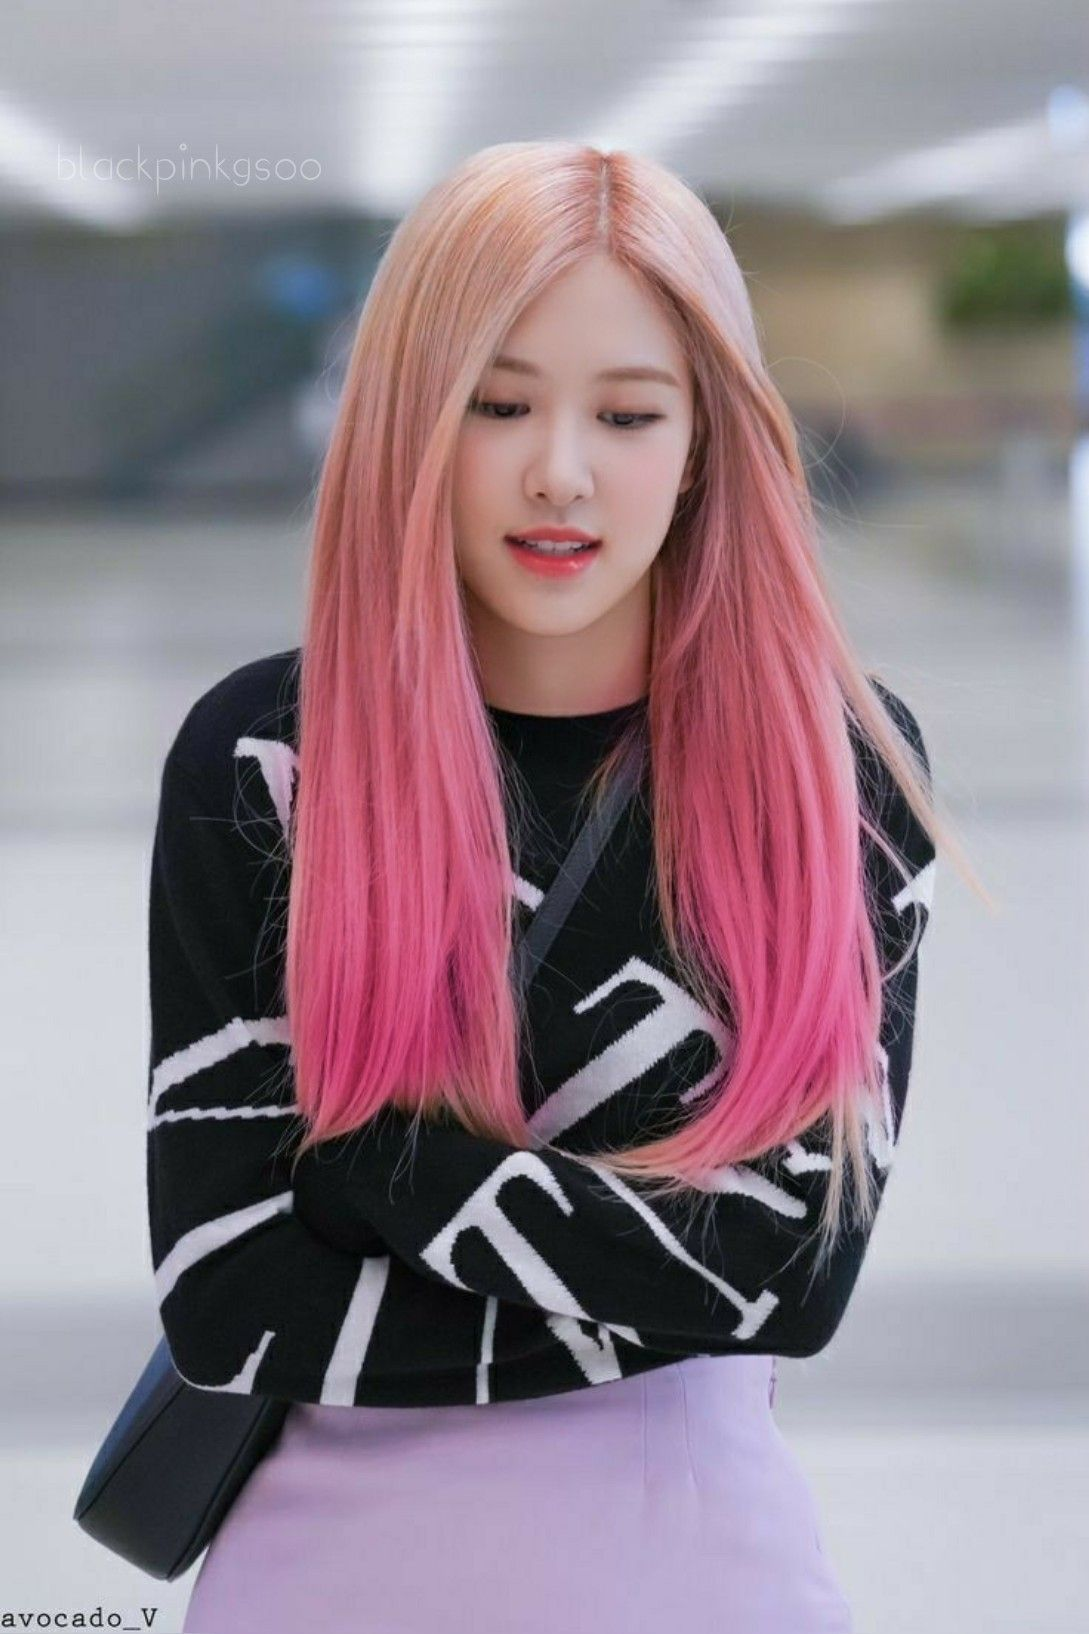 Rose With Pink Hair Blackpink In 2020 Pink Hair Hair Fashion